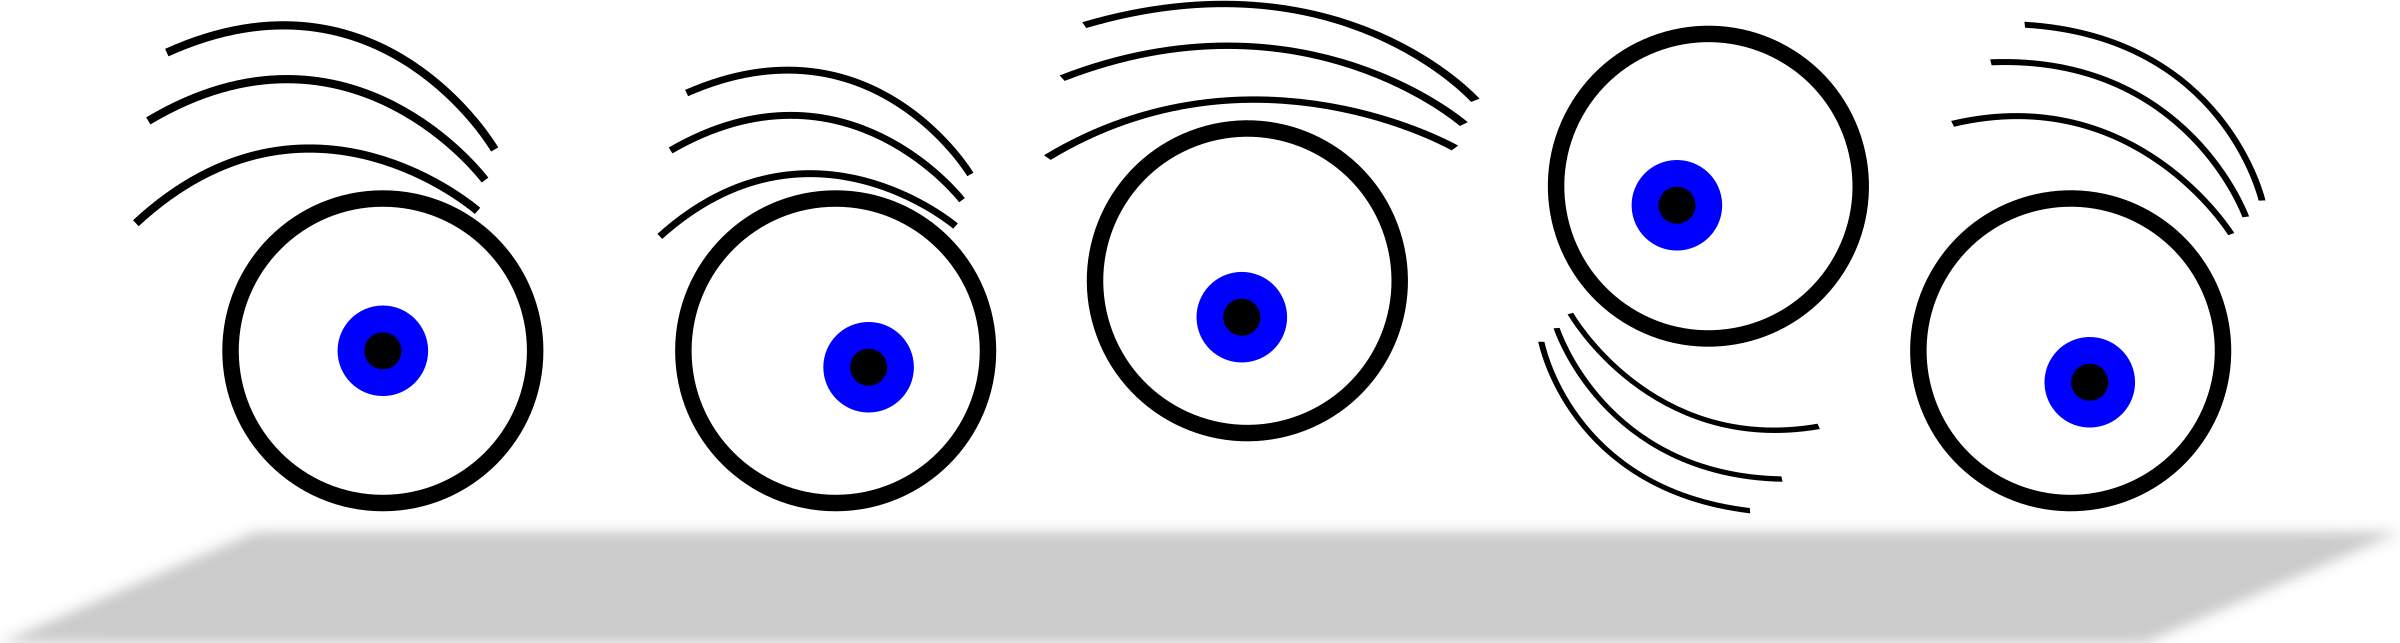 collection of rolling. Coal clipart eye